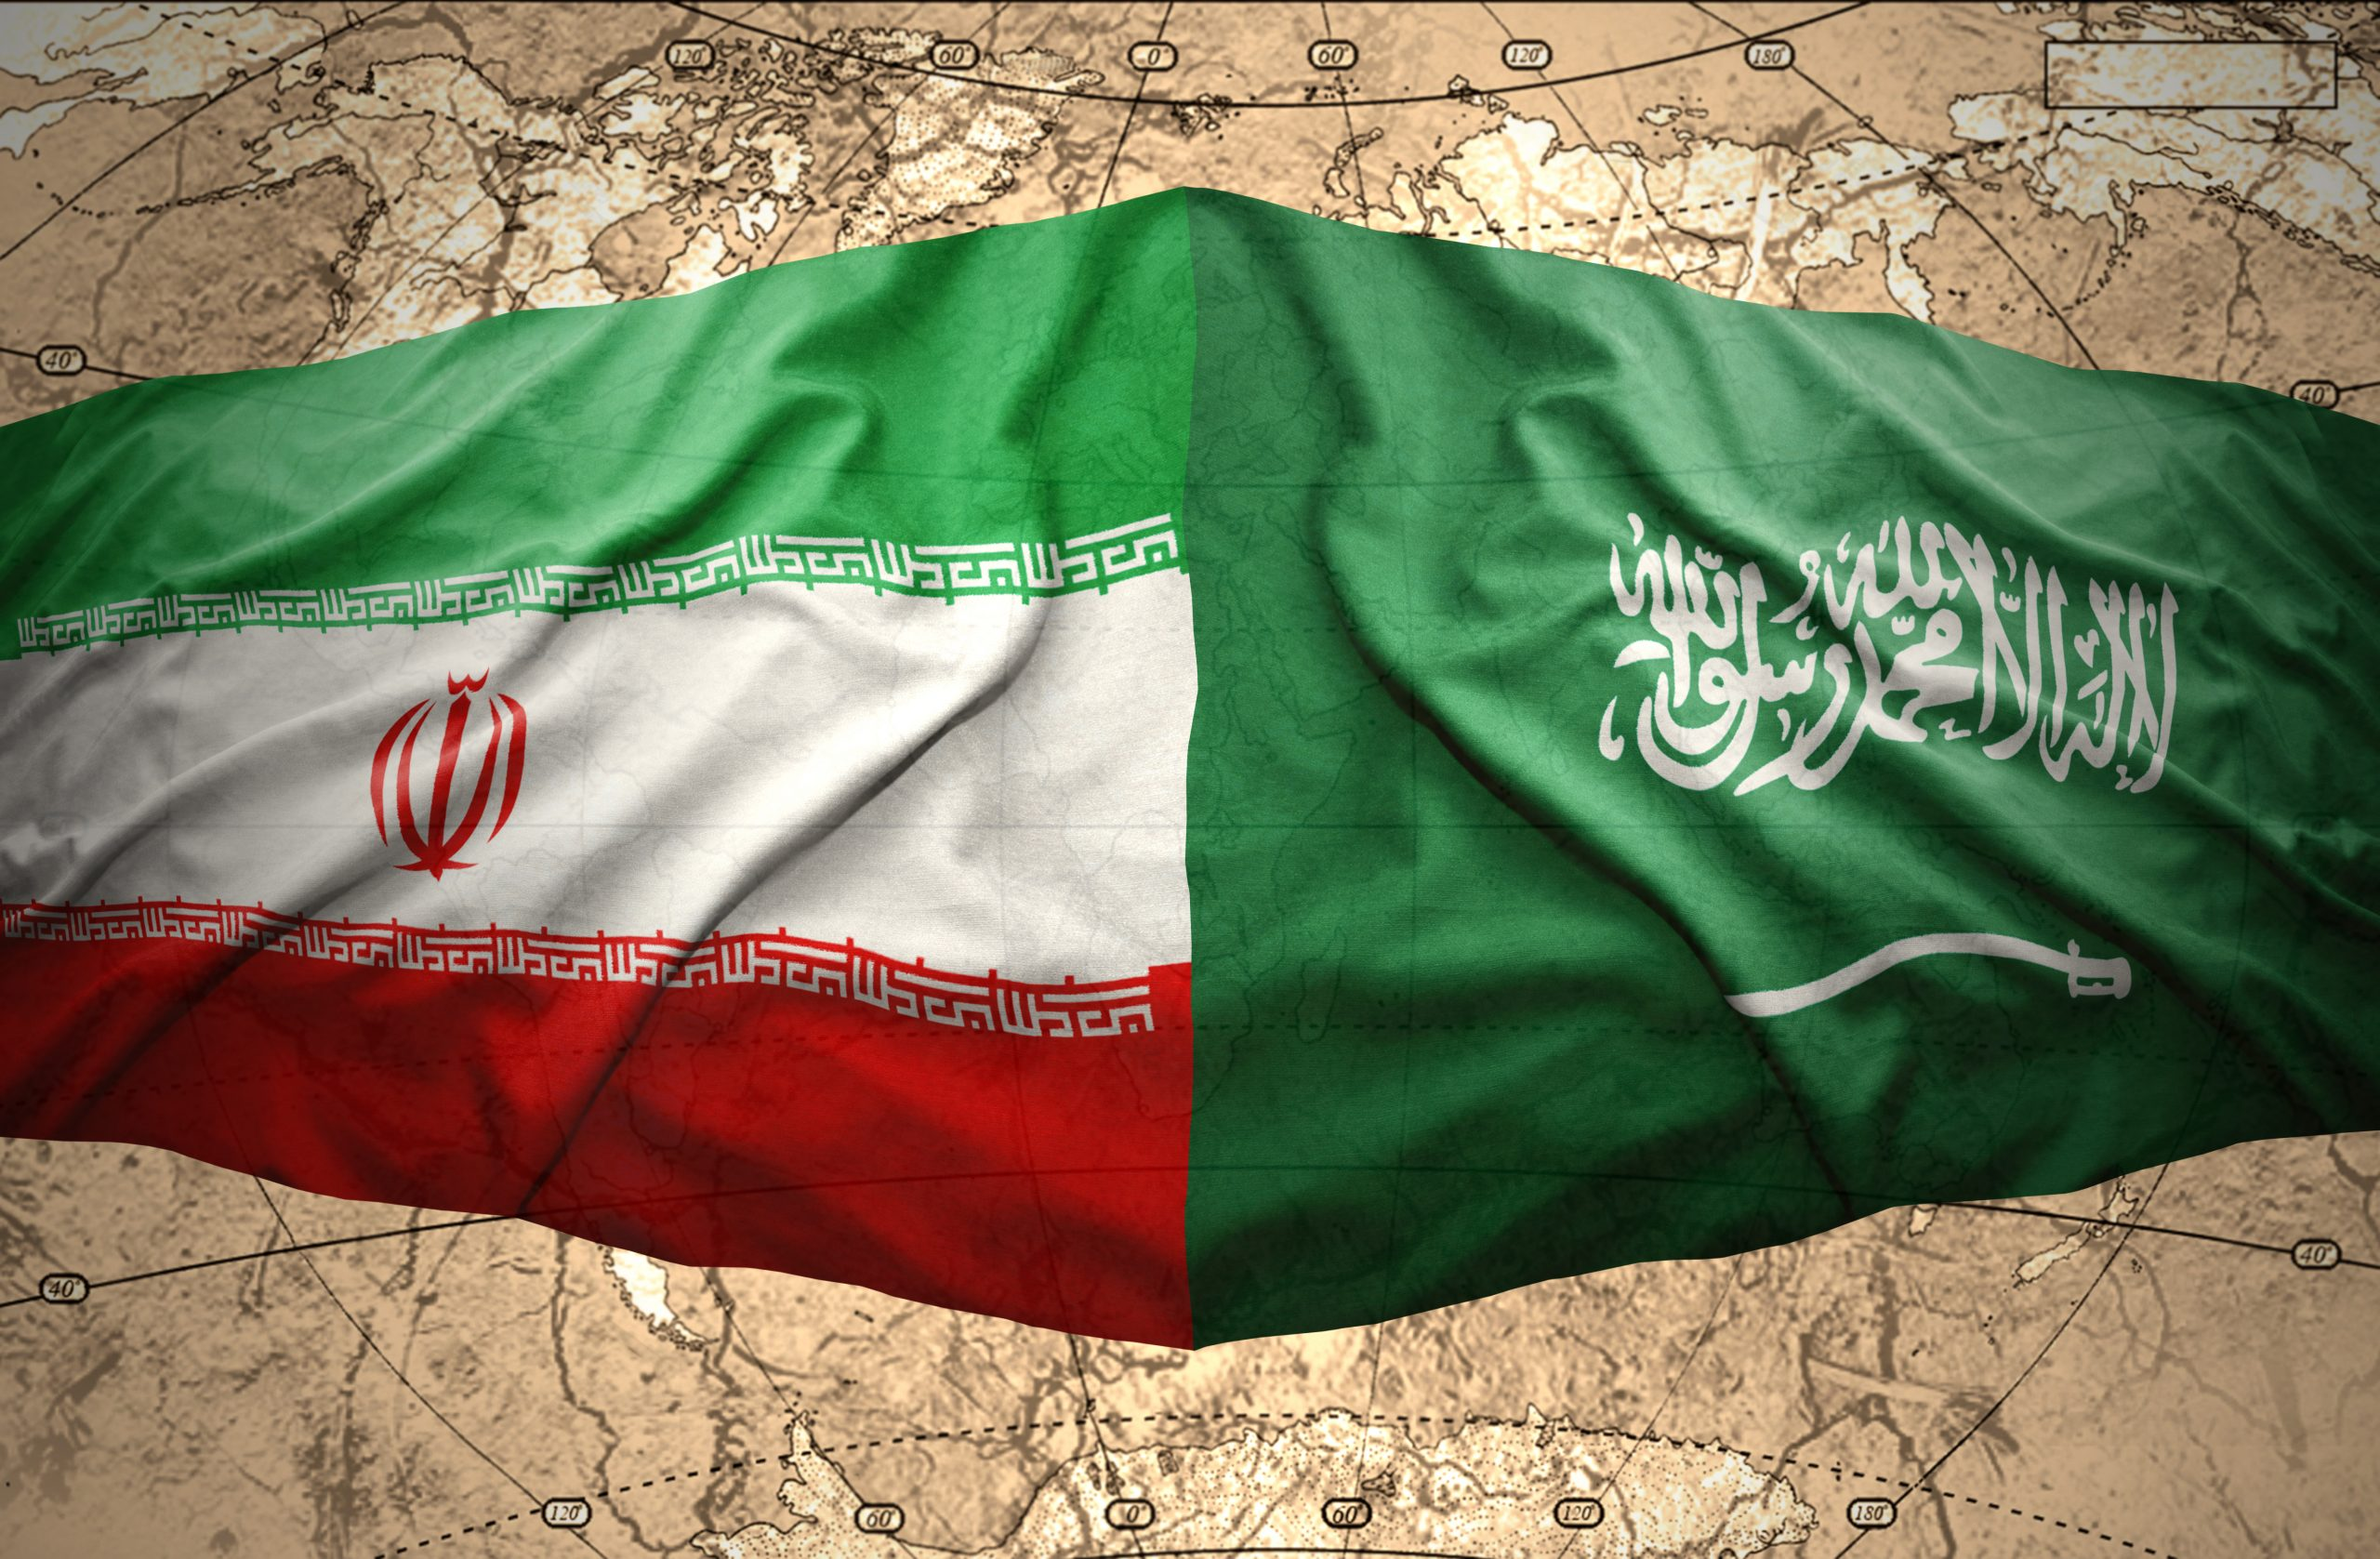 Saudi Arabia and Iran: Not places for persecuted religious and ethnic minorities